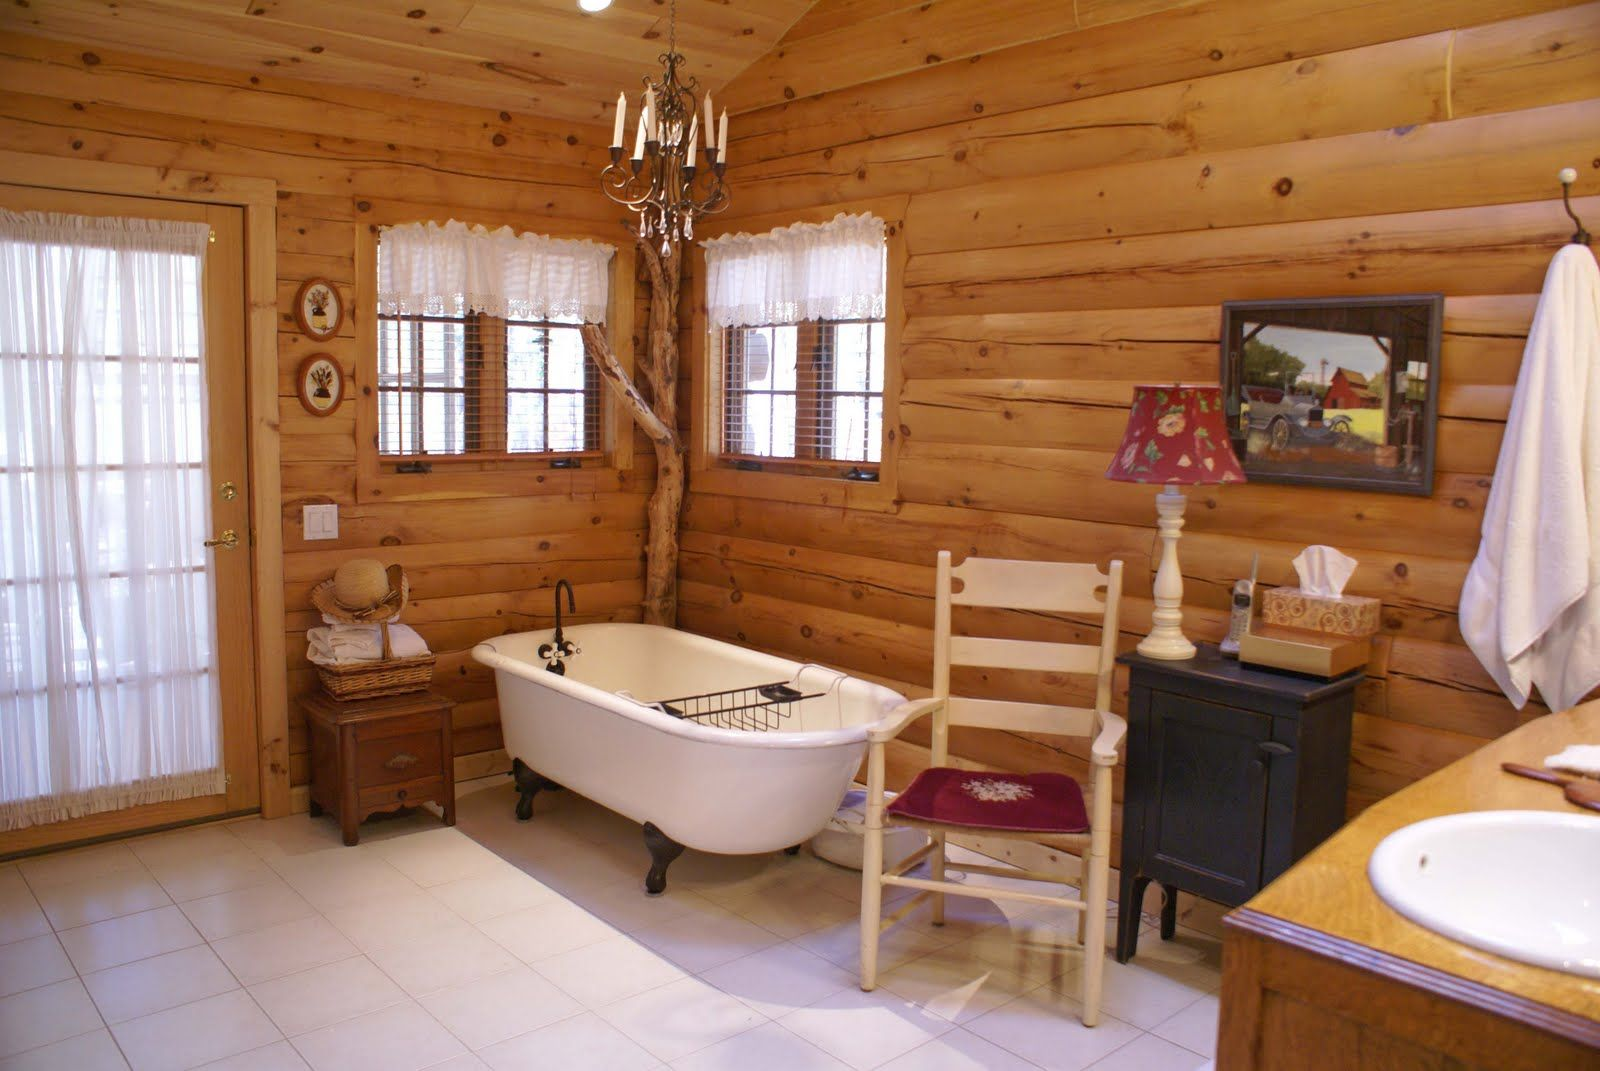 Log Cabin Interior Design Interior Design Interior Design Ideas Log Home  Interior Thoughts Round Log Walls Or Interior Design Ideas Log Home Interior  ...